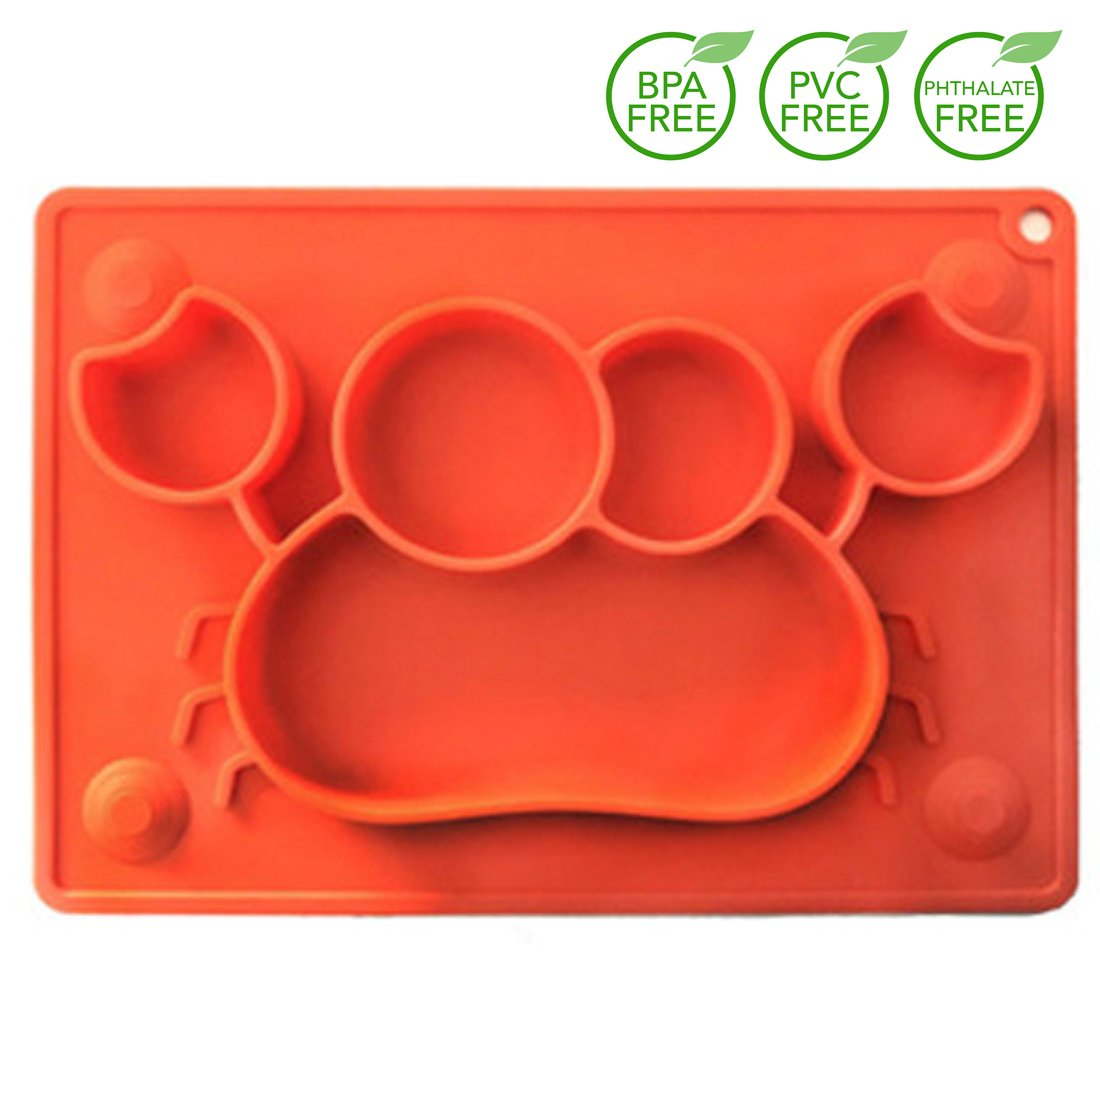 QISHENG TRADE Kids Baby Portable Placemat & Divided Suction Plate, Toddler Silicone Crabs-Shaped Placemat Bowls, Non Slip Feeding Mats From Baby Led Weaning, Color Red Canpan-pangxie-red